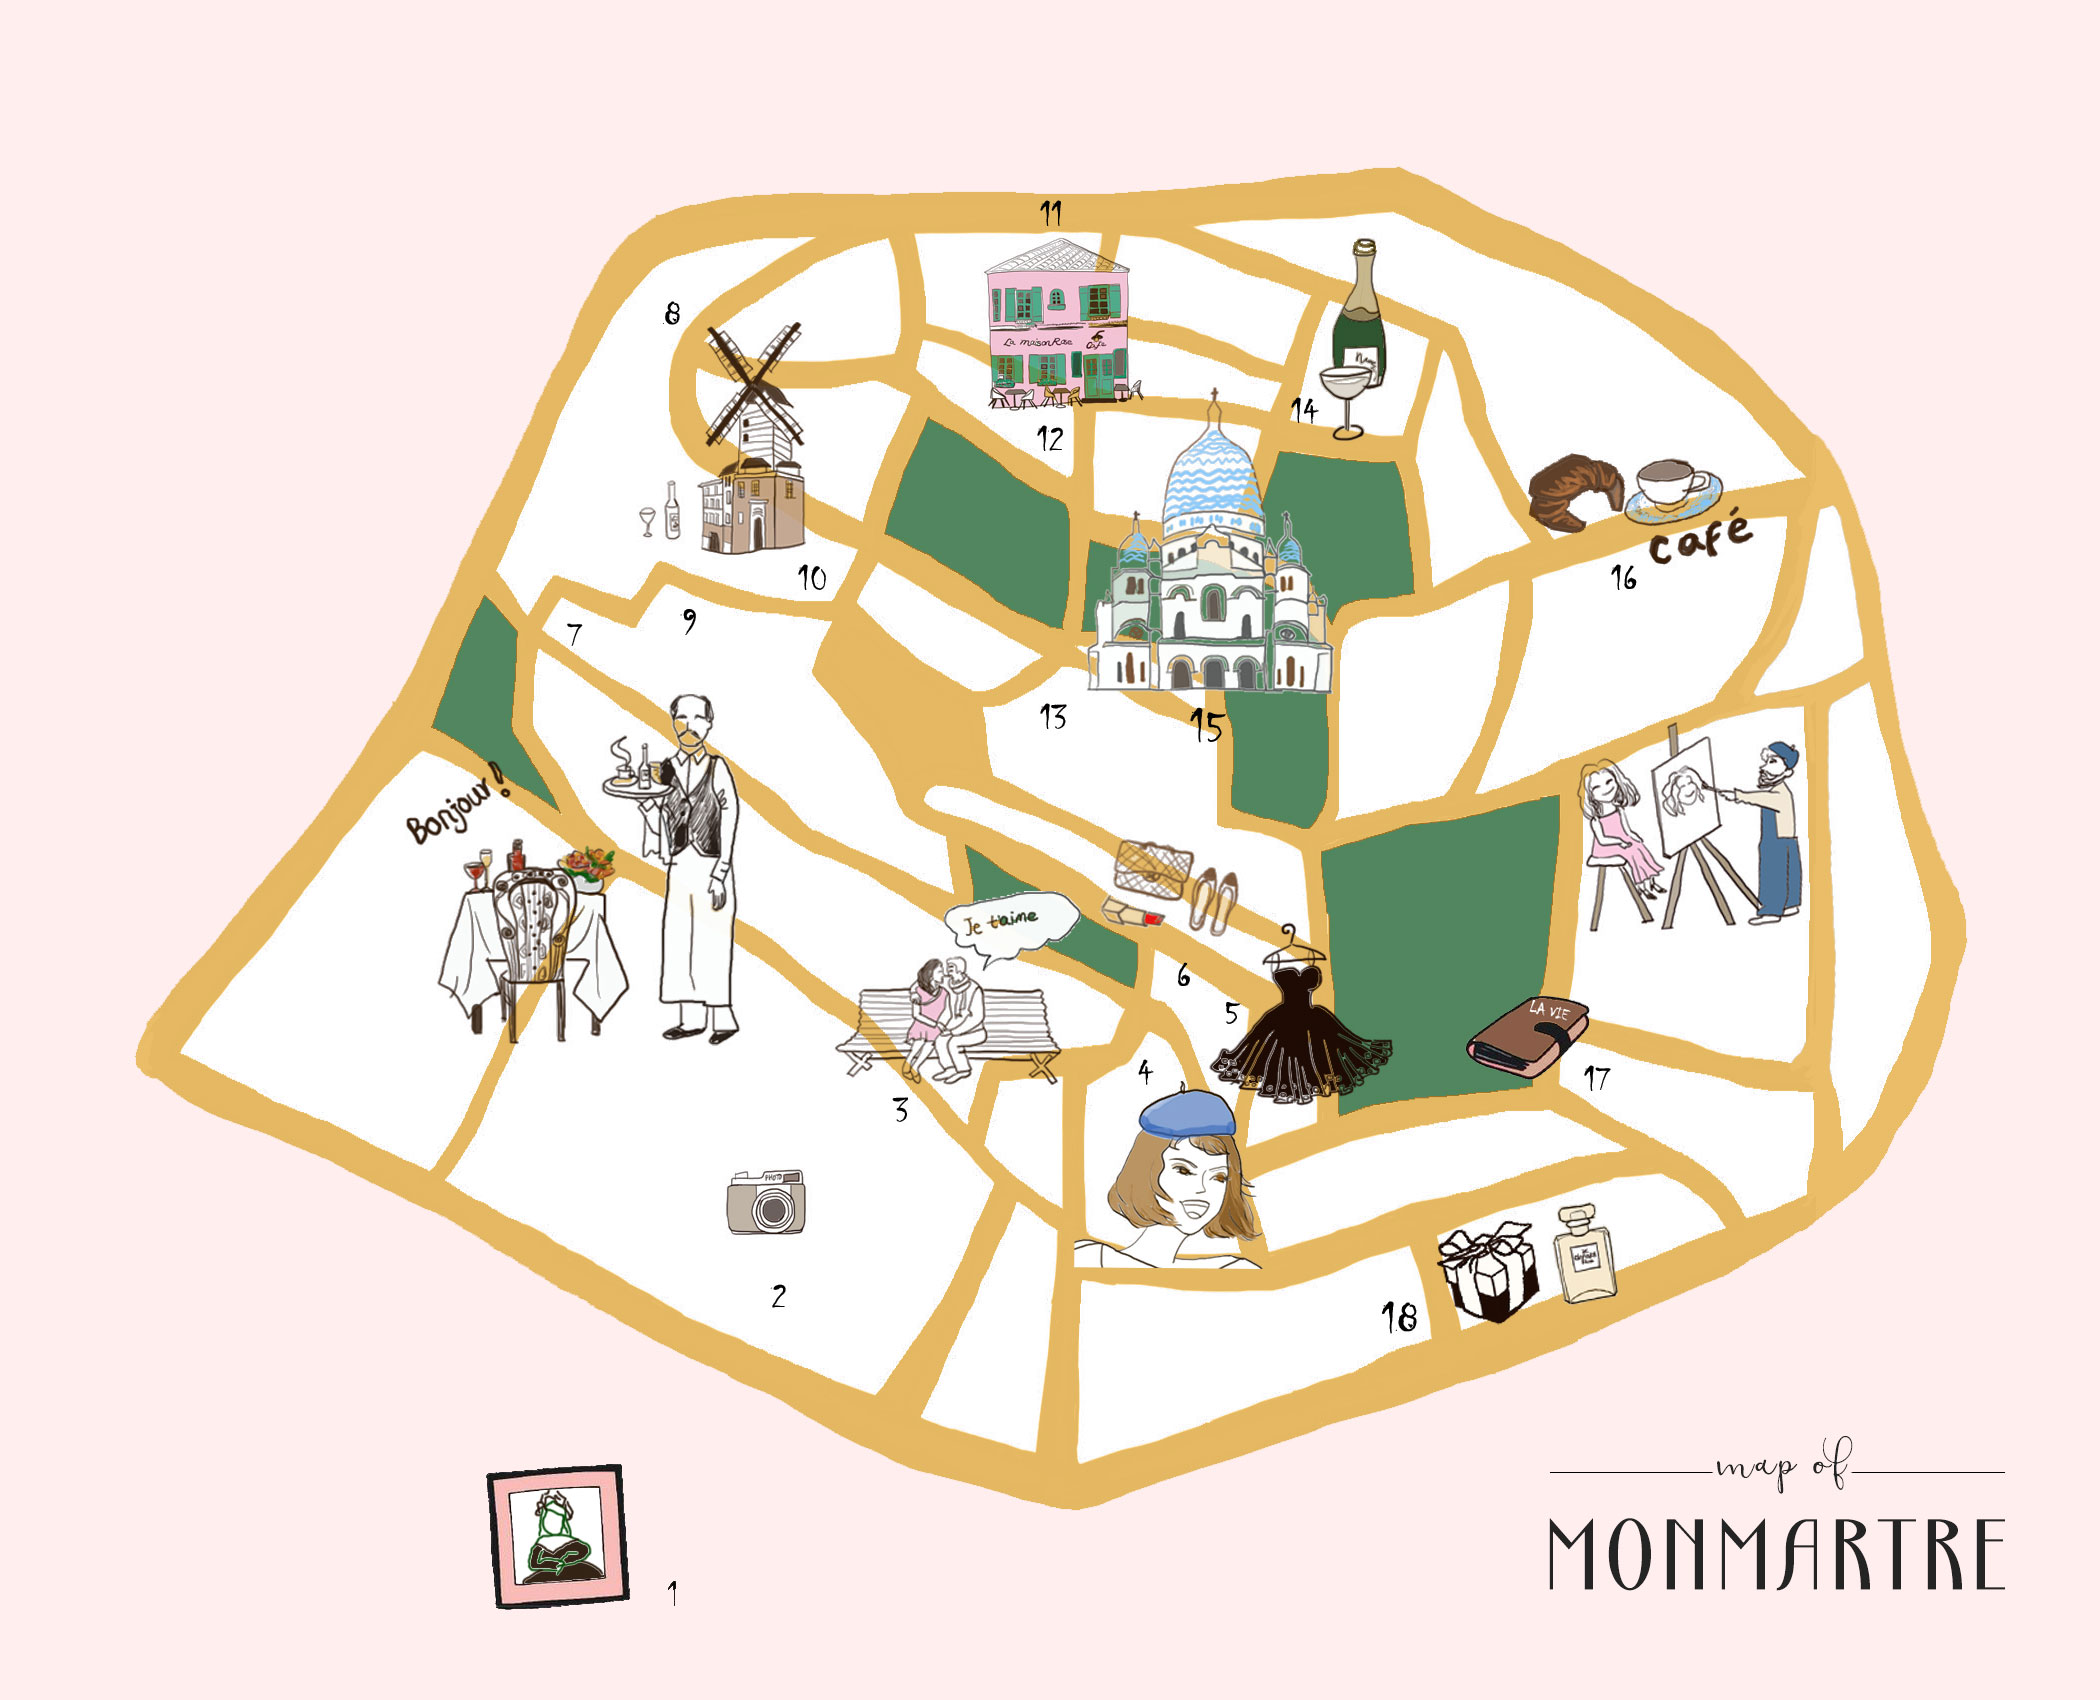 MONTMARTRE ITINERARY